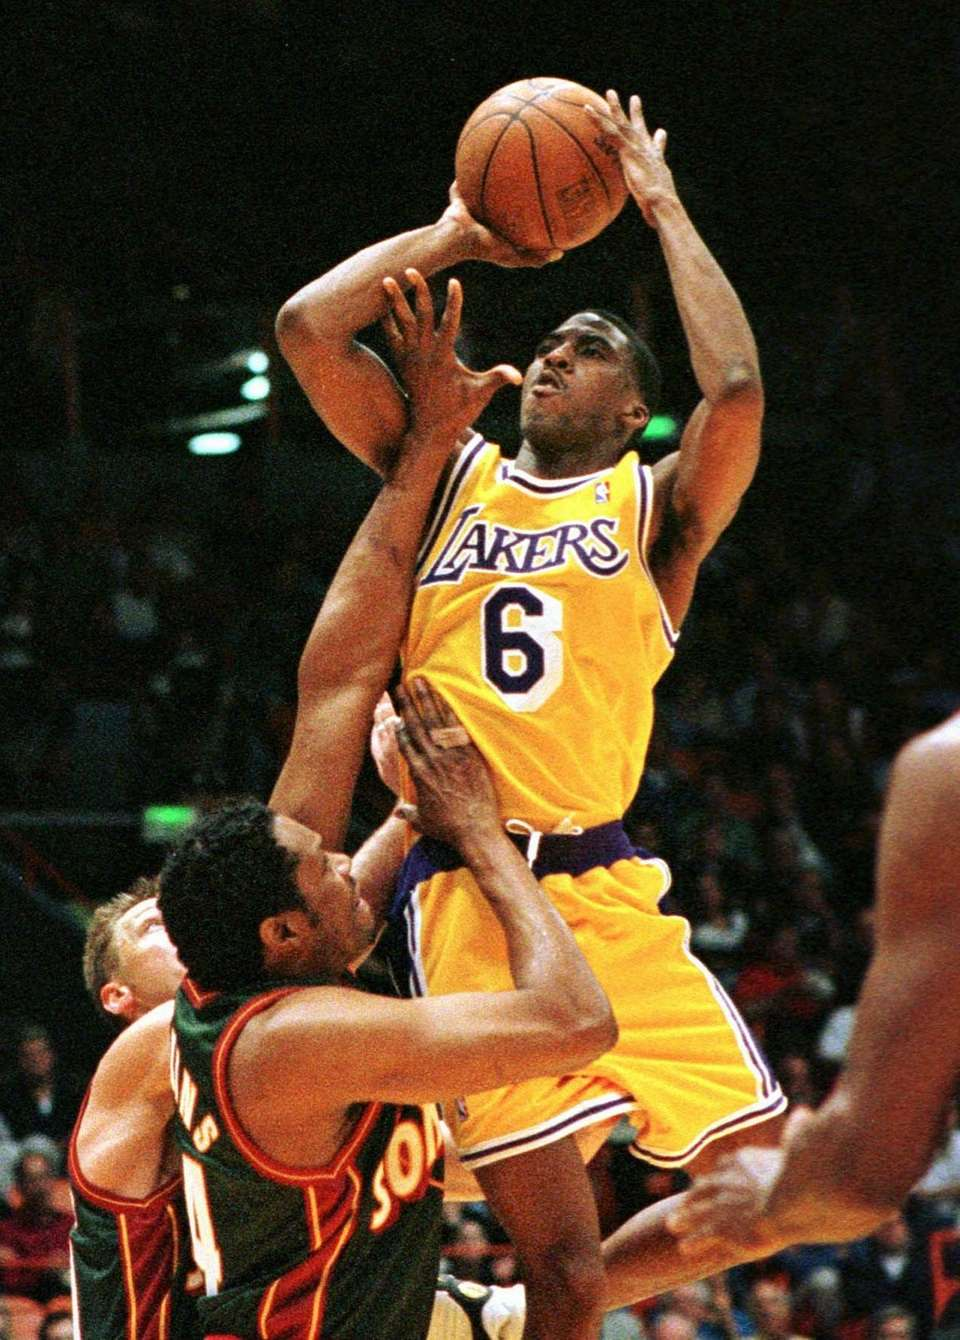 EDDIE JONES, West\ Los Angeles Lakers Jones was